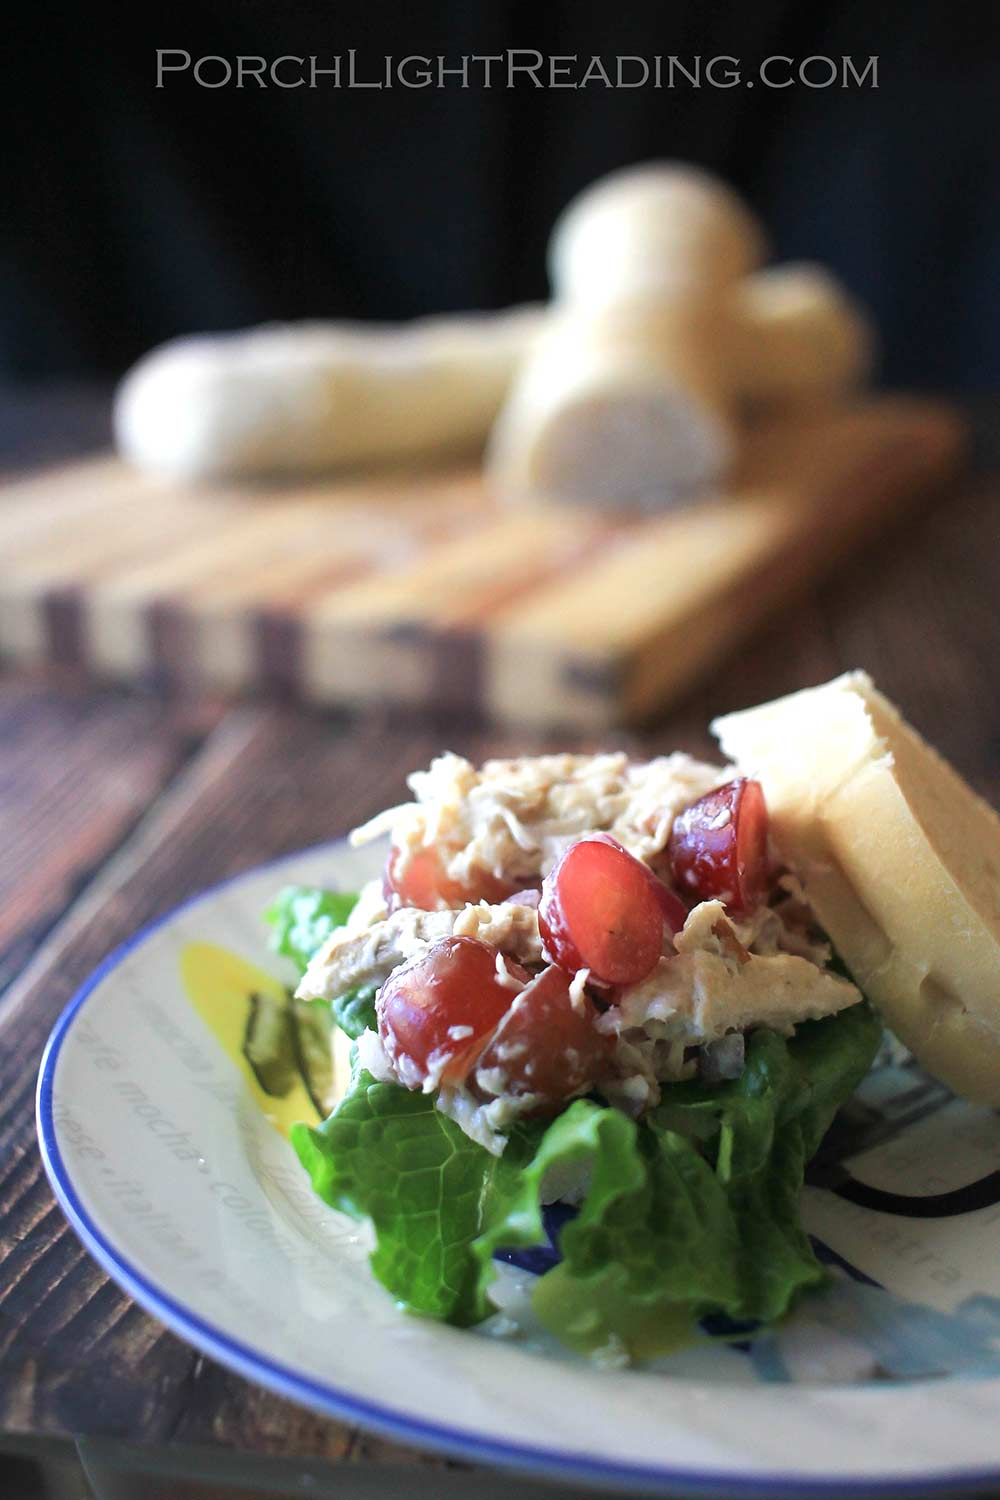 Chicken salad on a bed of lettuce with sliced grapes.